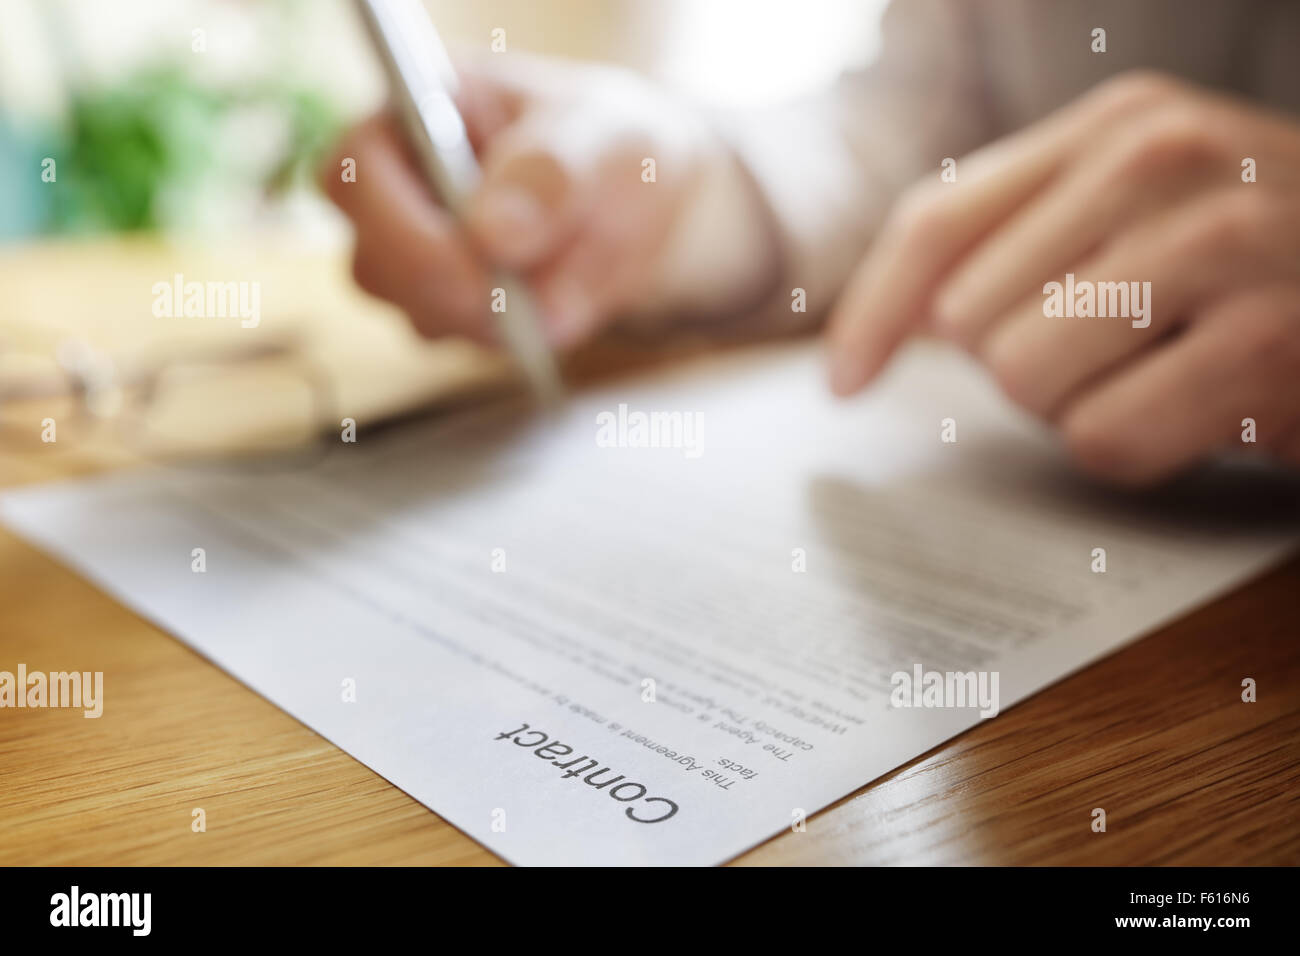 Businessman signing a legal contract document at his office desk - Stock Image